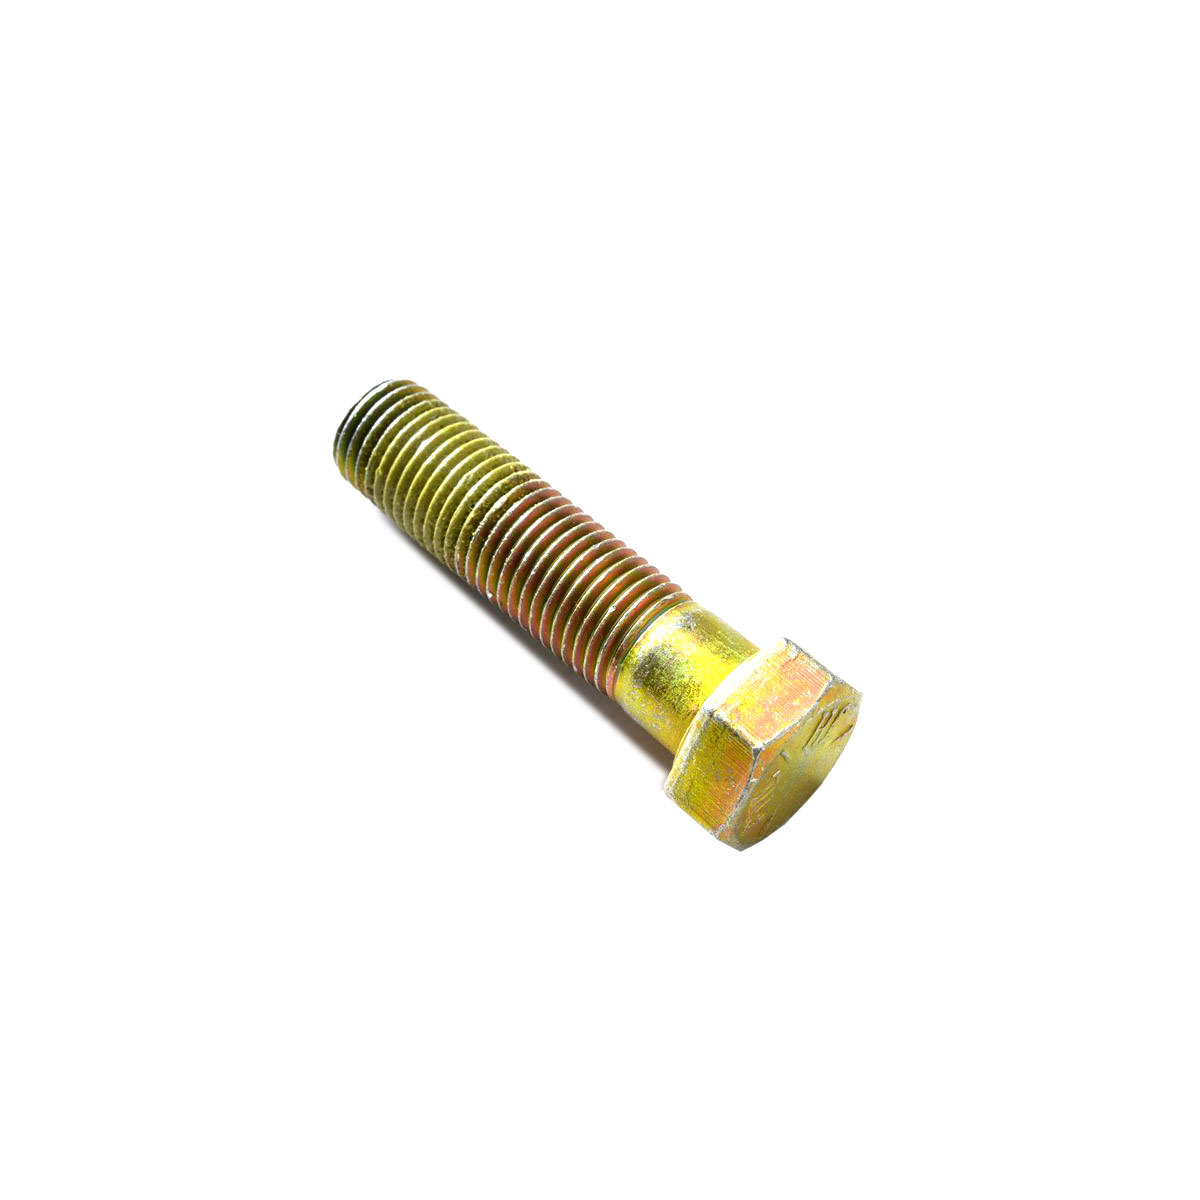 Scag Hex Head Cap Screw with Patch 7/16-20 x 1.75 04102-01